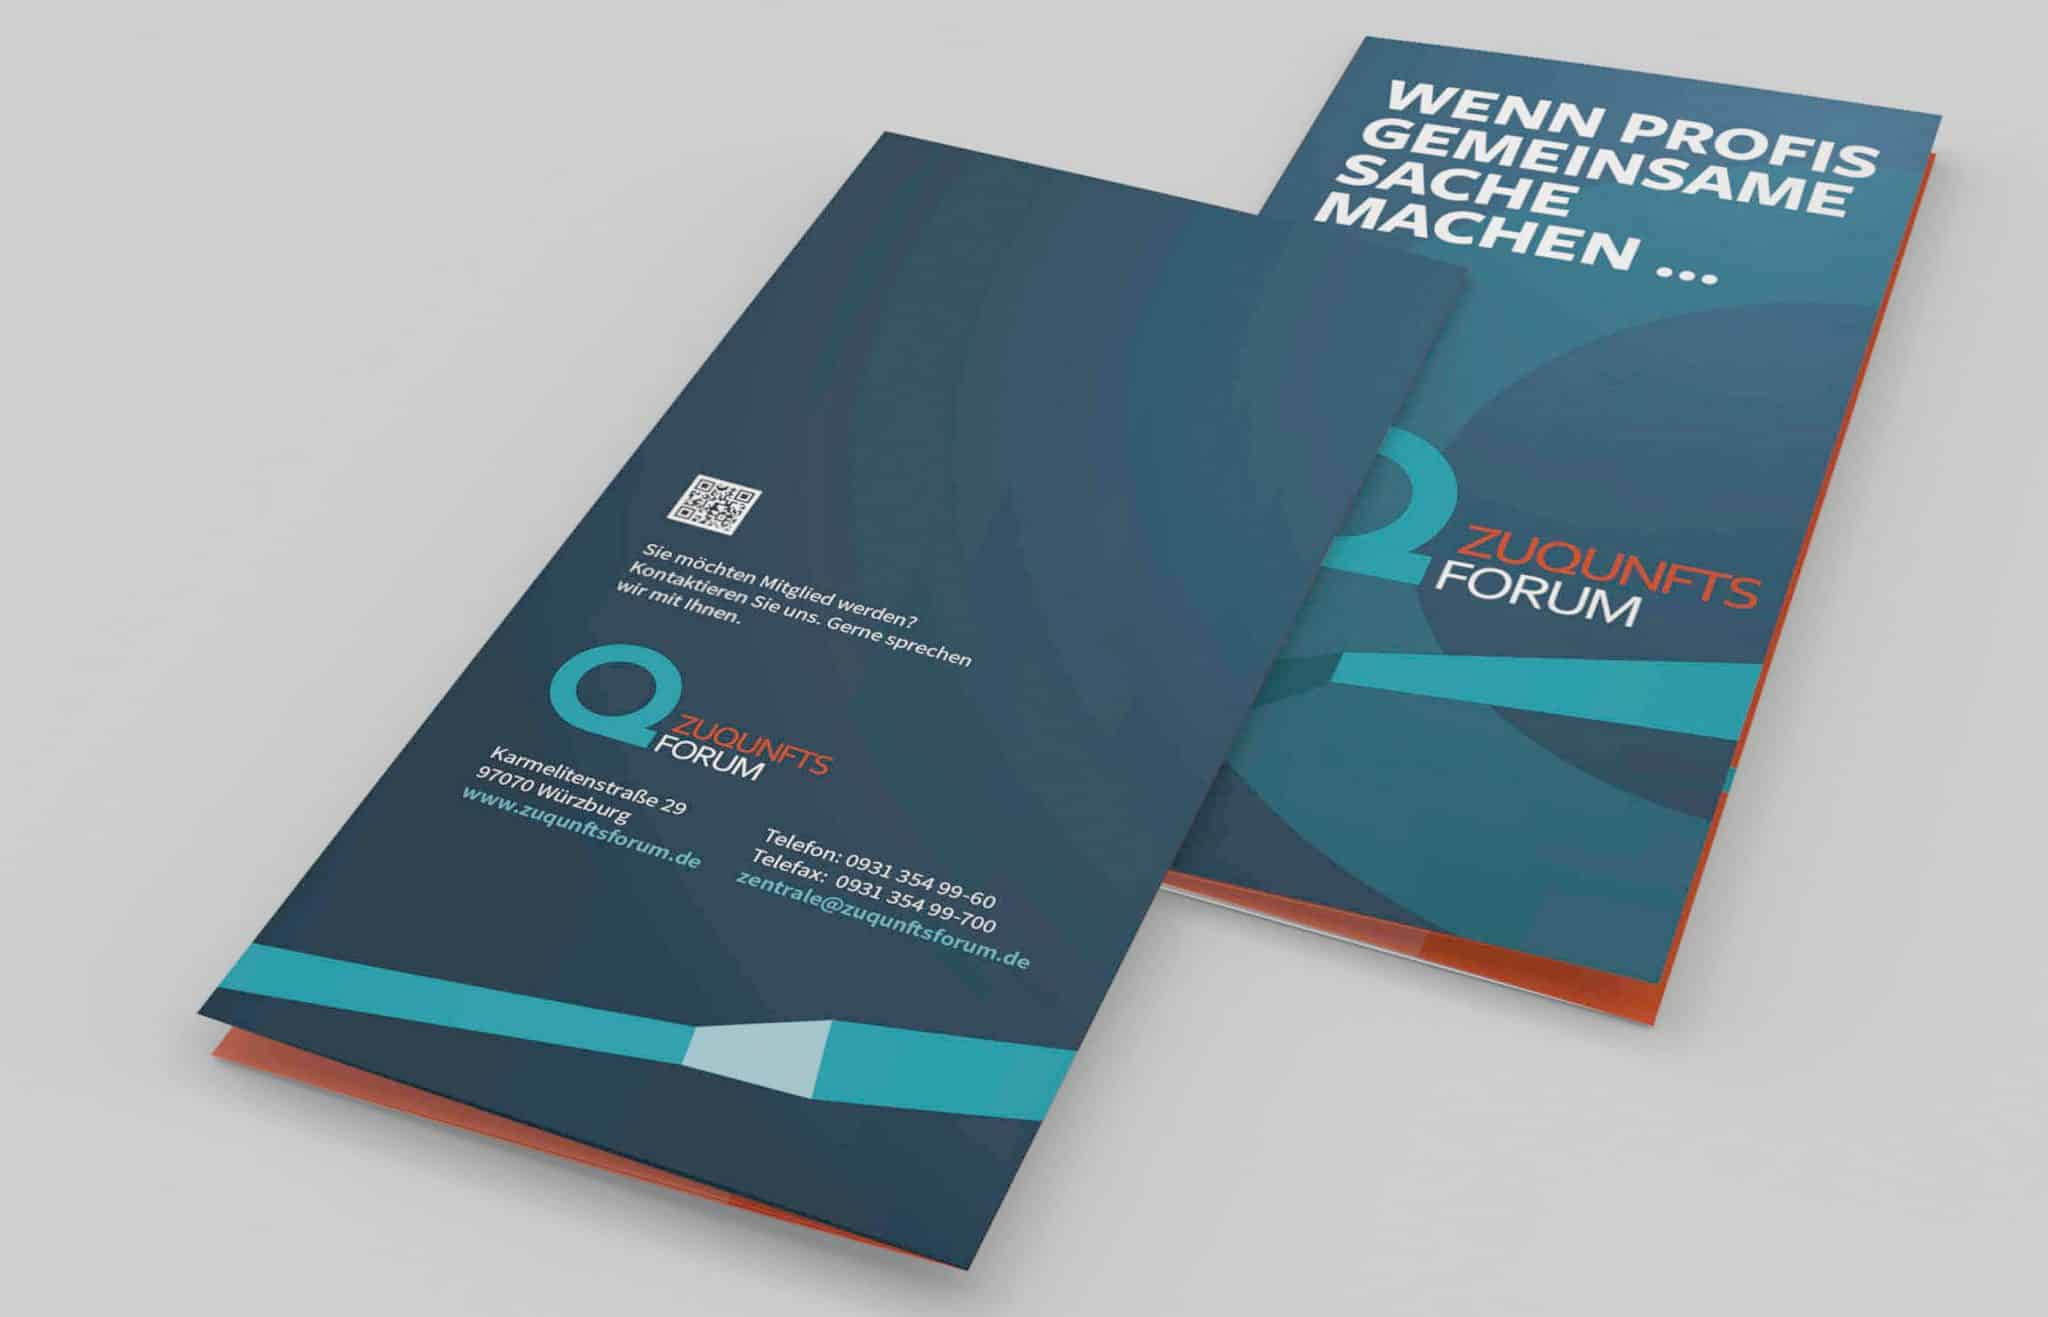 folder_zuqunftsforum Würzburg Corporate Design